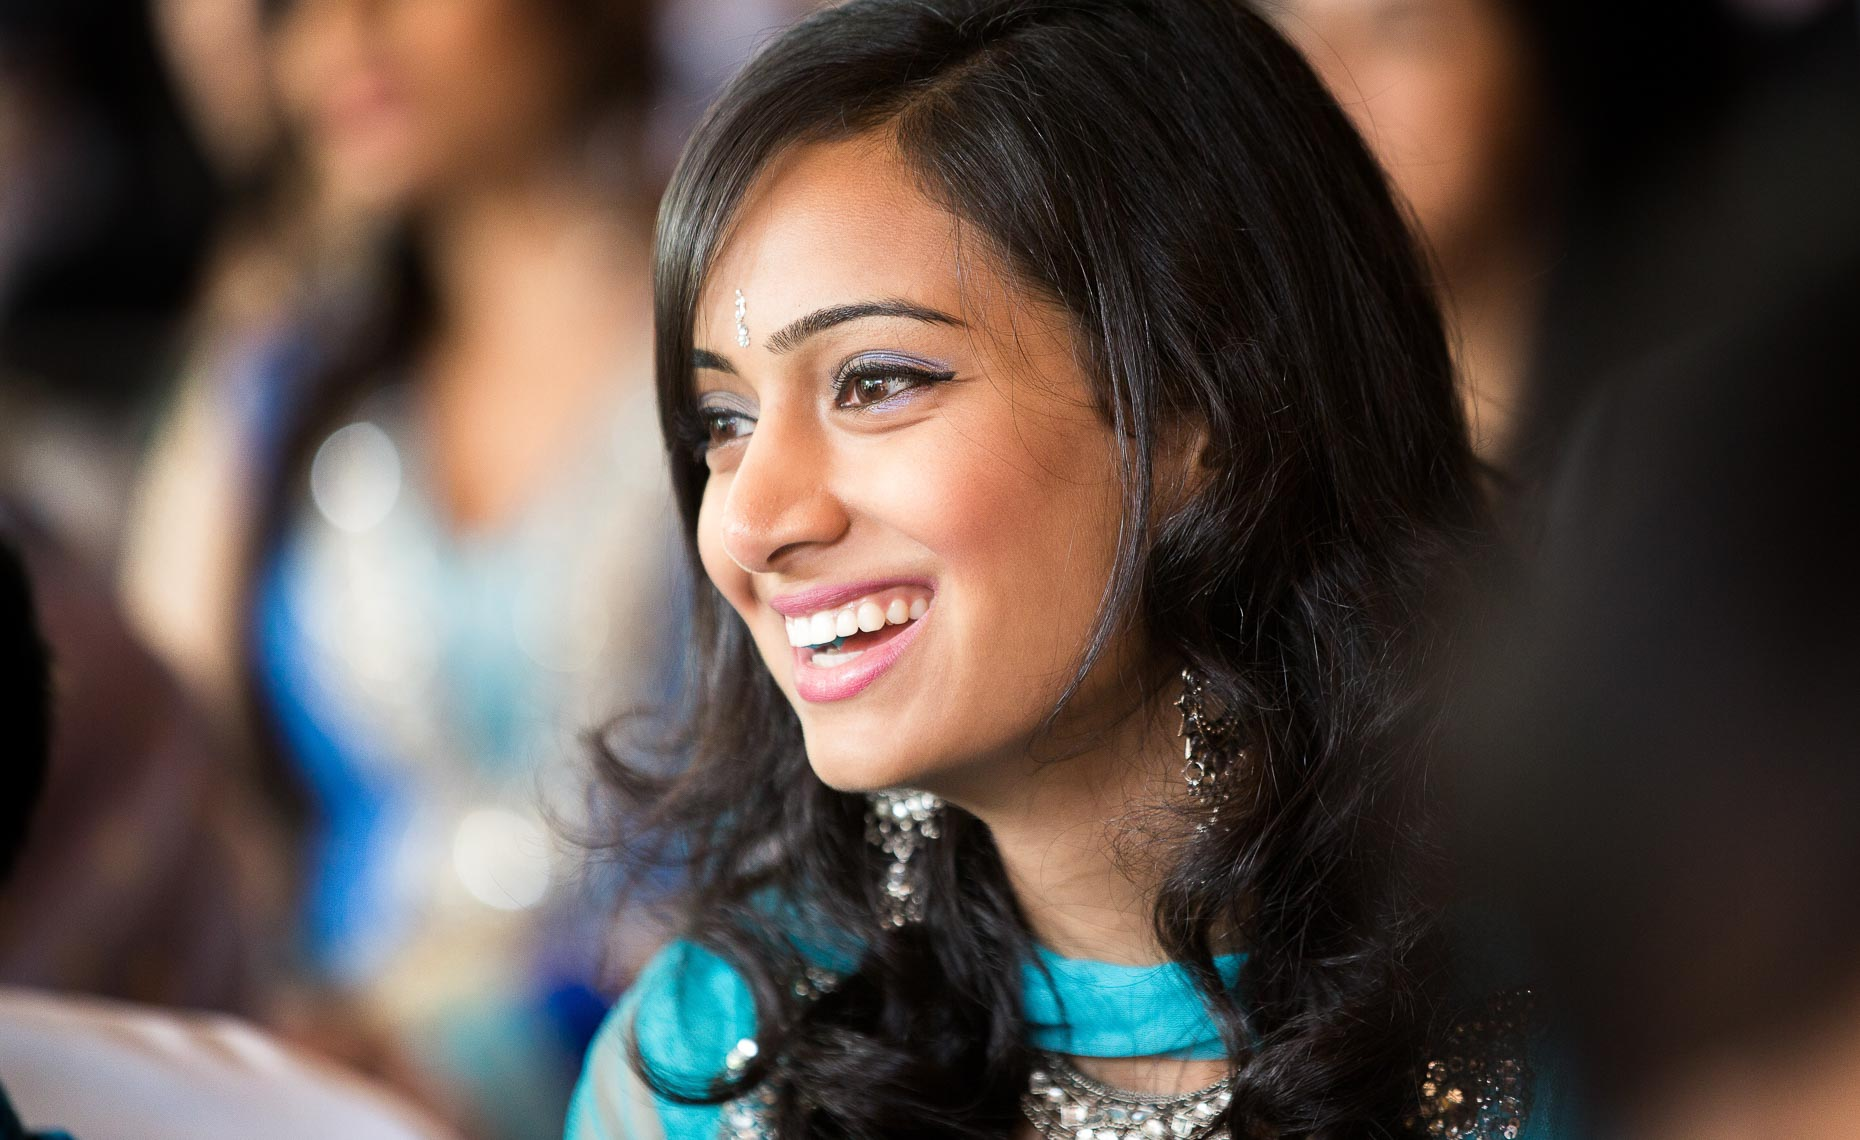 Indian wedding guest laughs during ceremony in candid moment